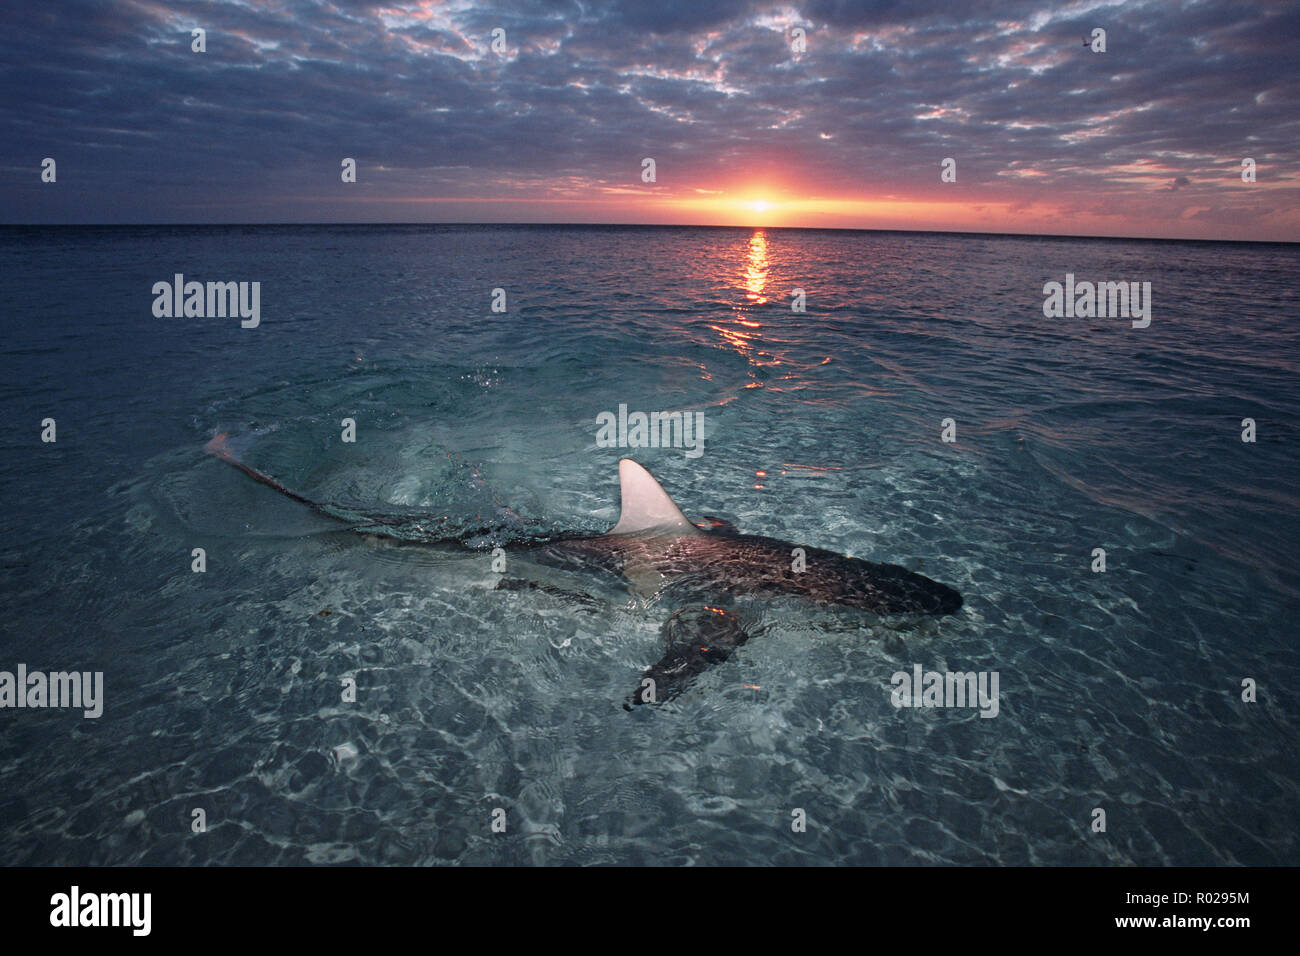 Blacktip shark, Carcharhinus limbatus, can be found in shallow water where they prey on small fishes and squid, Walker's Cay, Bahamas Islands, Atlanti Stock Photo